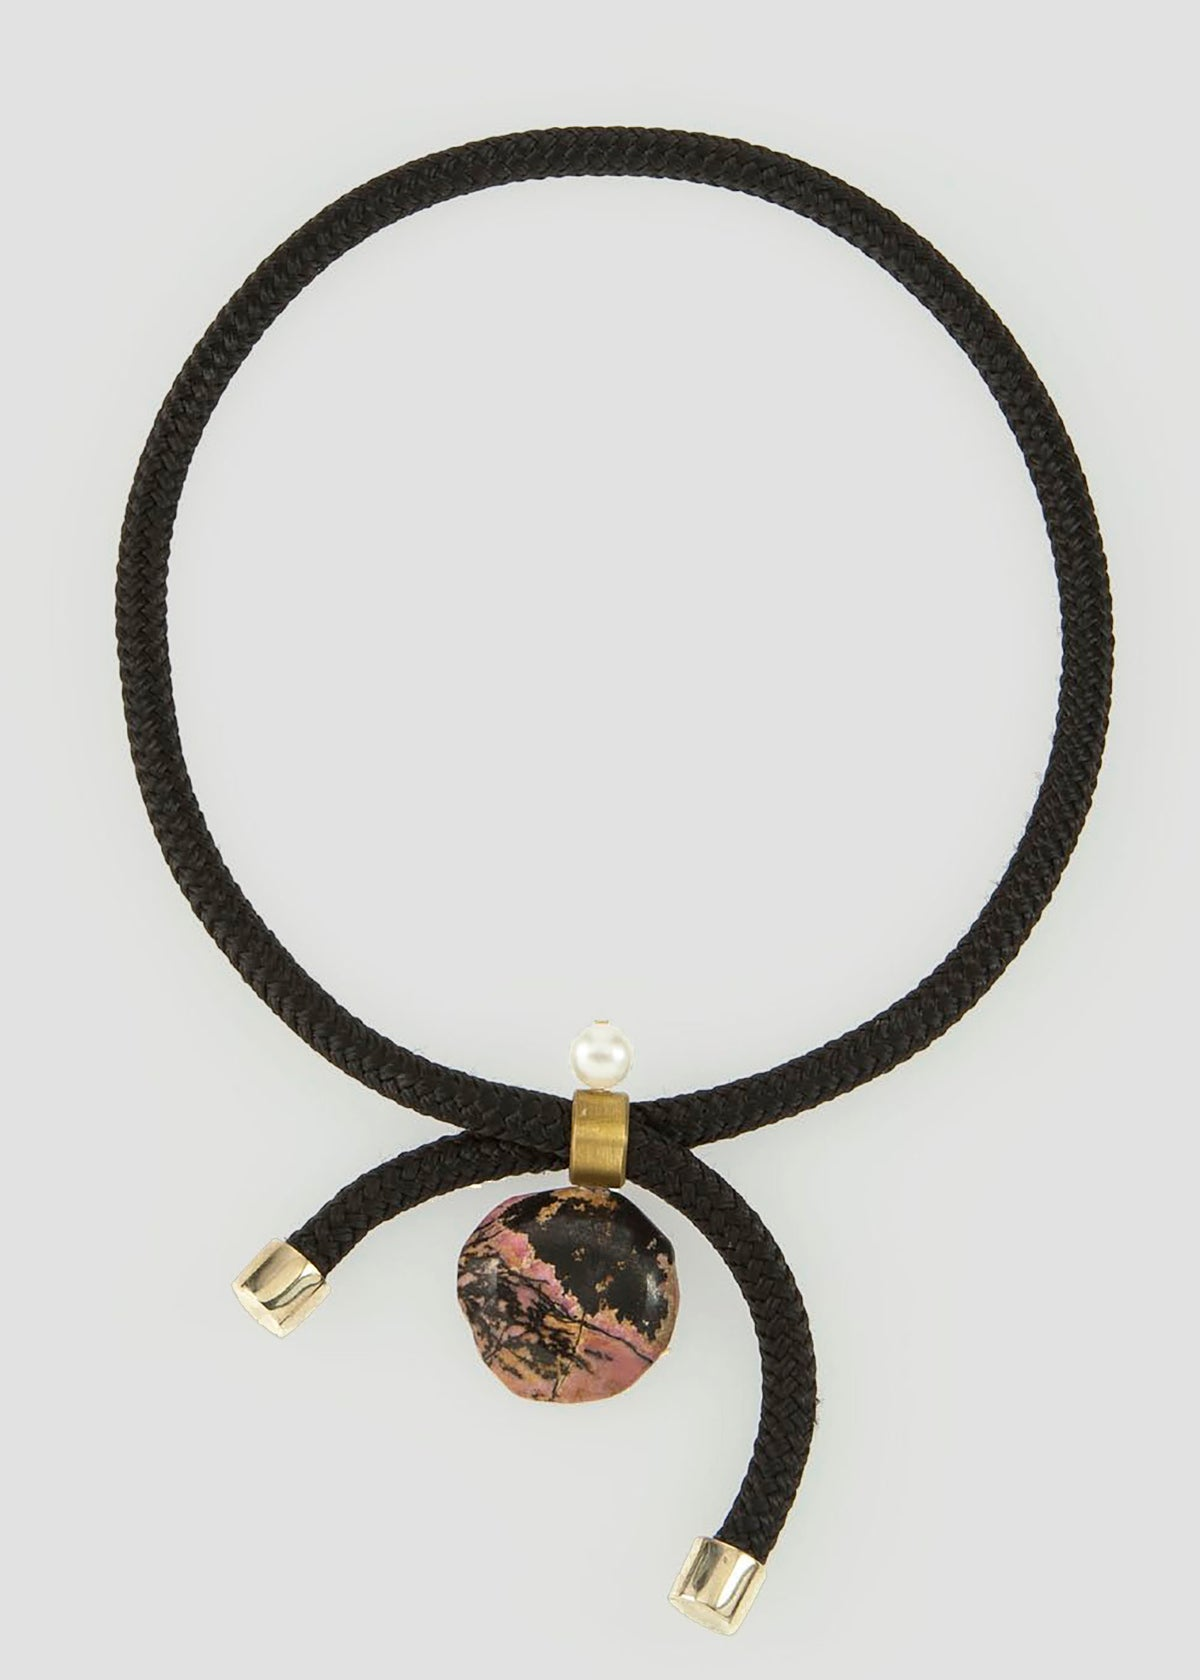 Pichulik Black braided adjustable necklace with stone